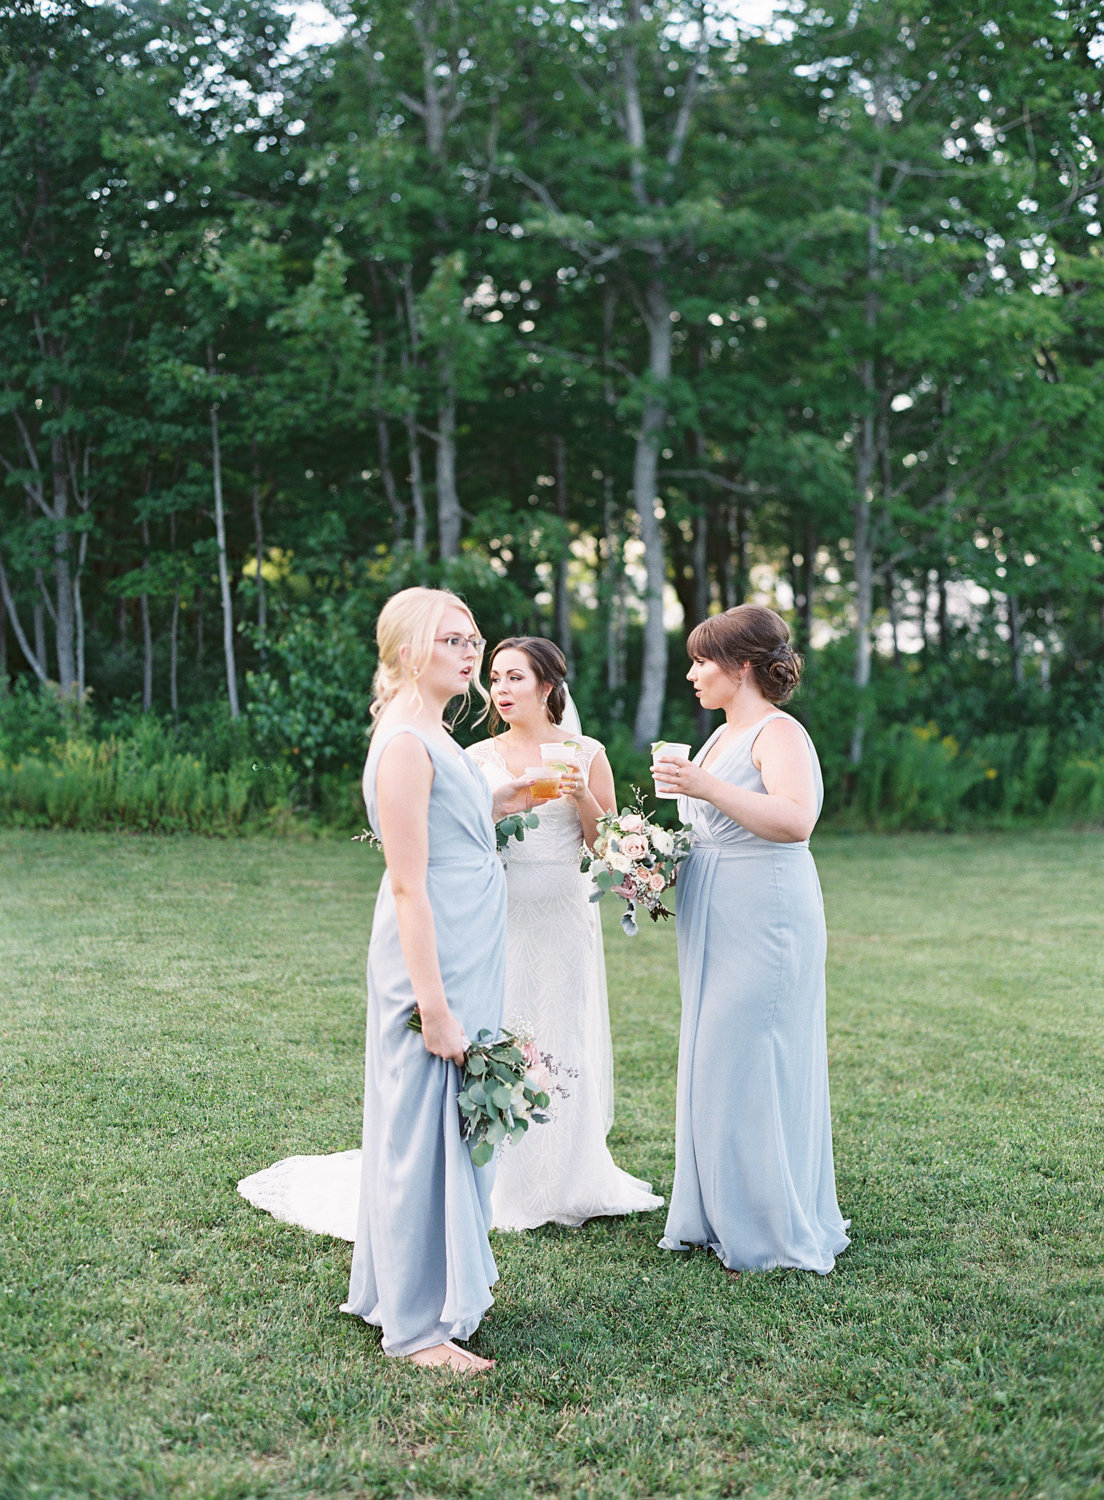 Jacqueline Anne Photography - Nova Scotia Backyard Wedding-50